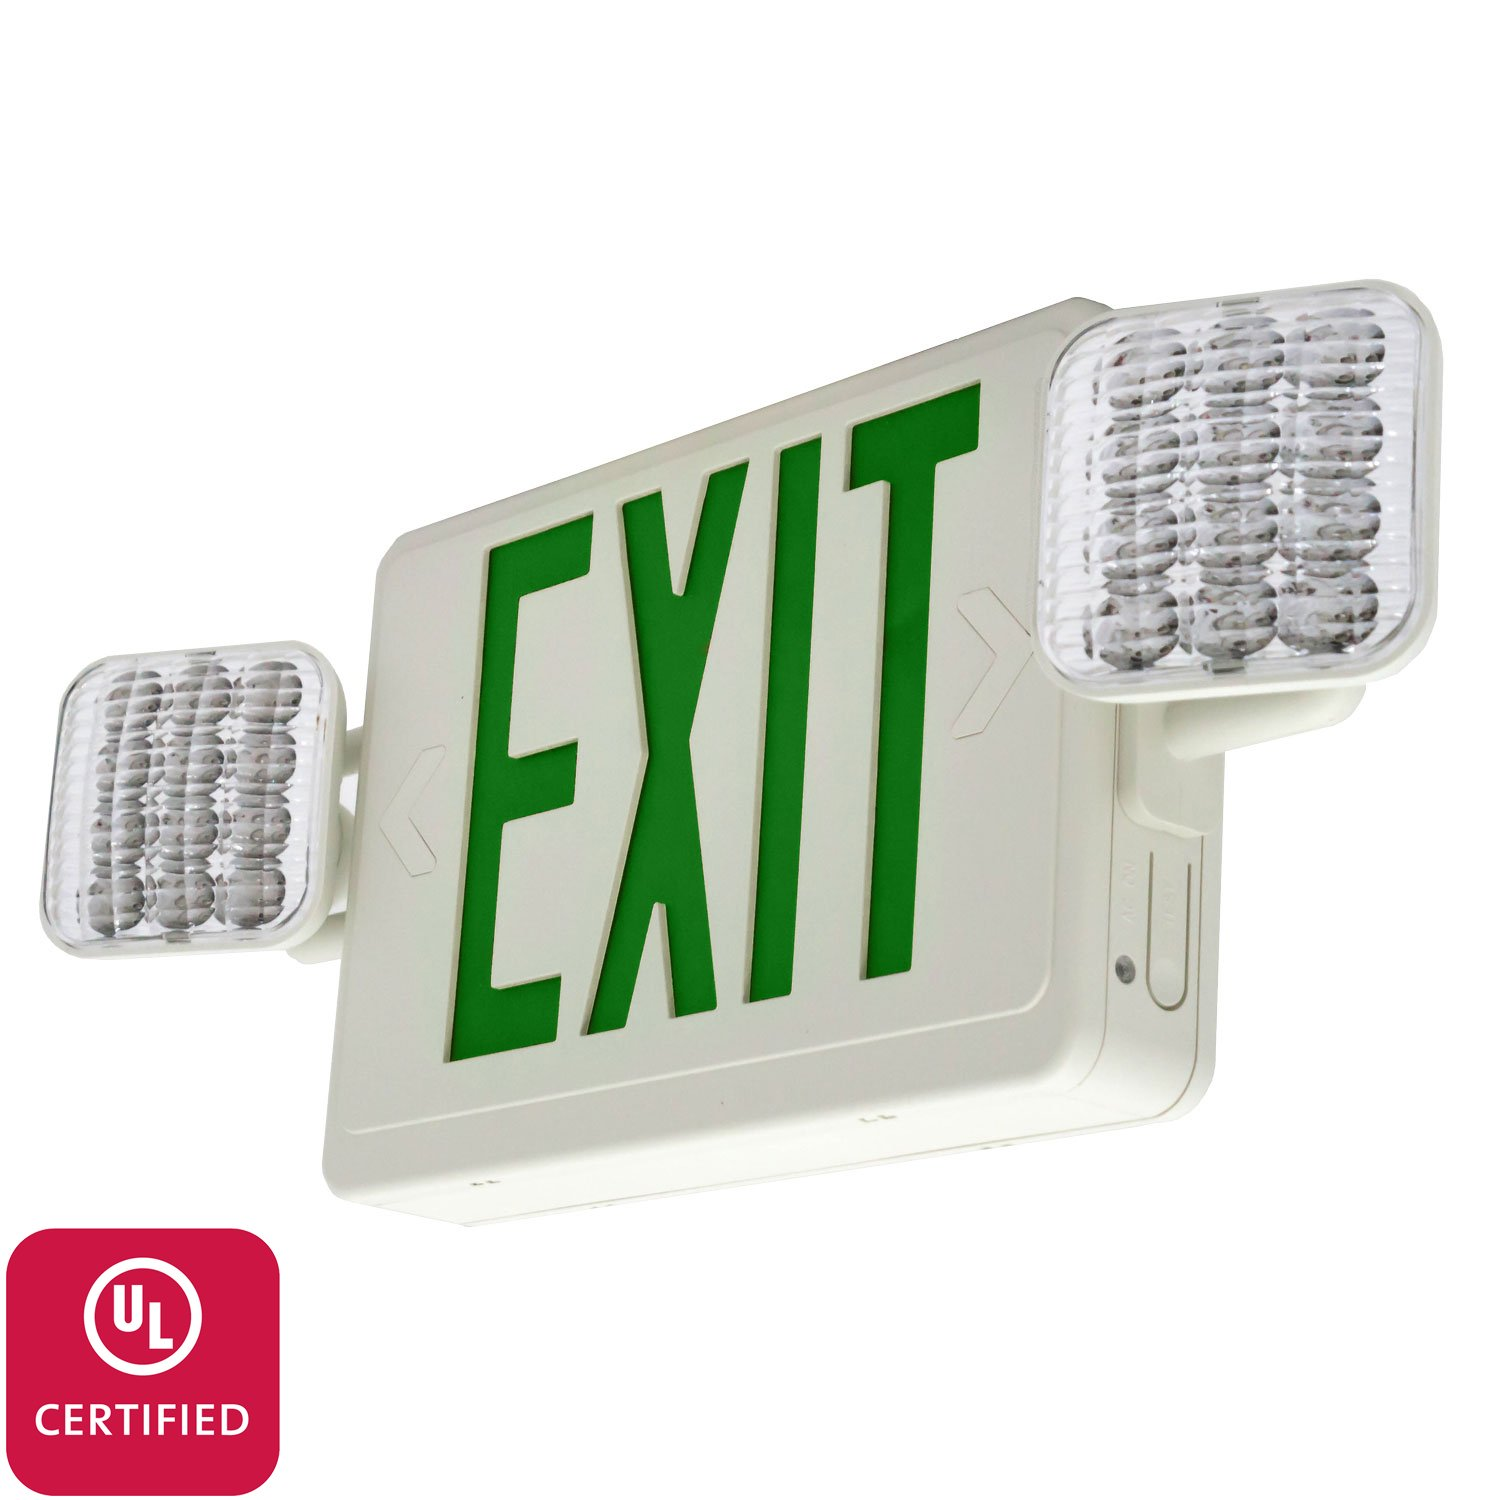 LFI Lights - UL Certified - Hardwired Green LED Combo Exit Sign Emergency Light - Square Head - COMBOG2